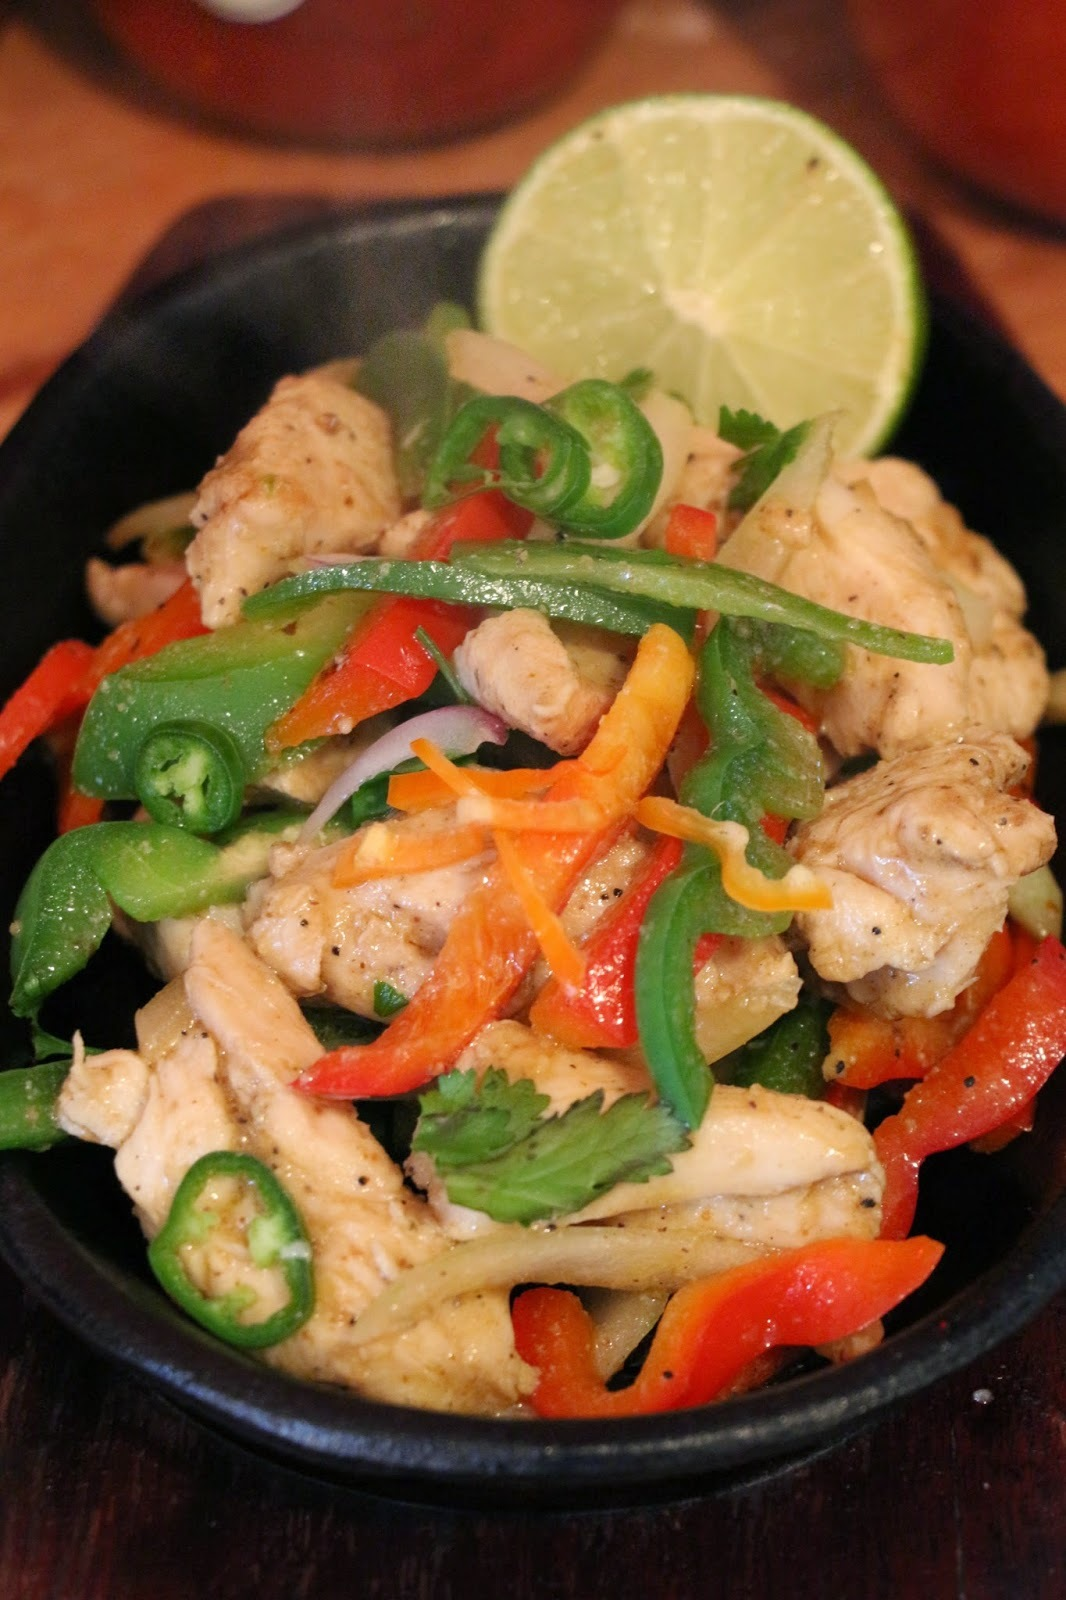 CHICKEN LIME AND CORIANDER FAJITAS